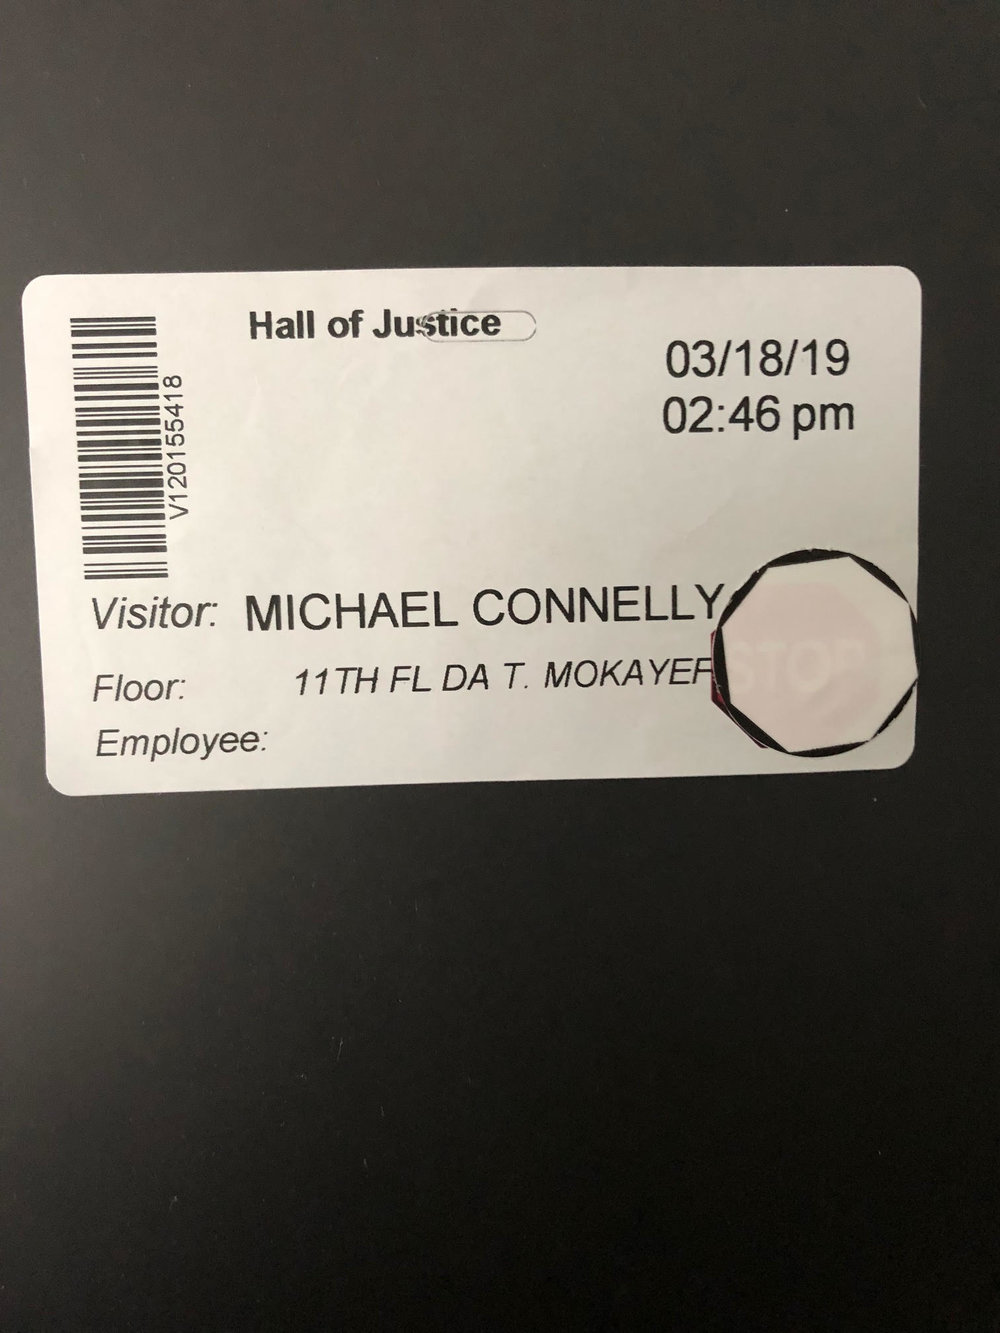 Michael Connelly Visitor Pass at the Hall of Justice